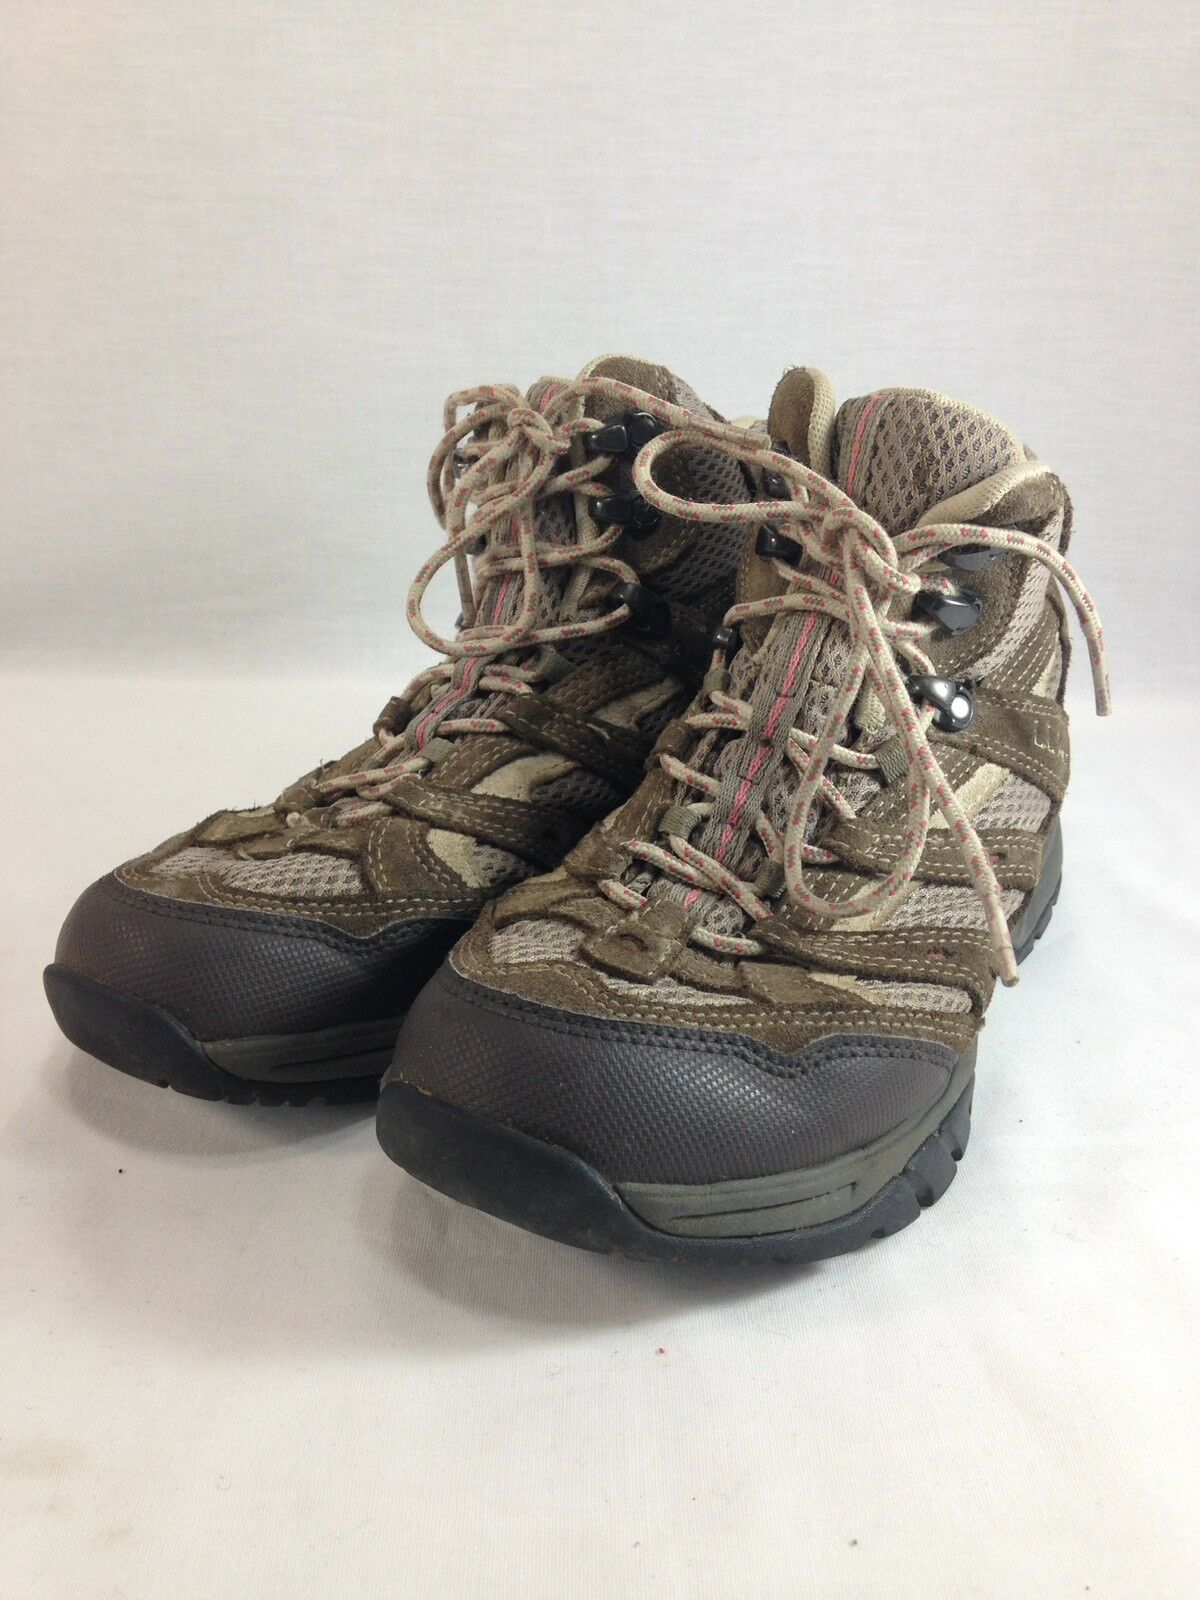 LL Bean Hiking Boots Womens 8 M Brown Pink High  Top Lace Up Trail Mountain  welcome to order